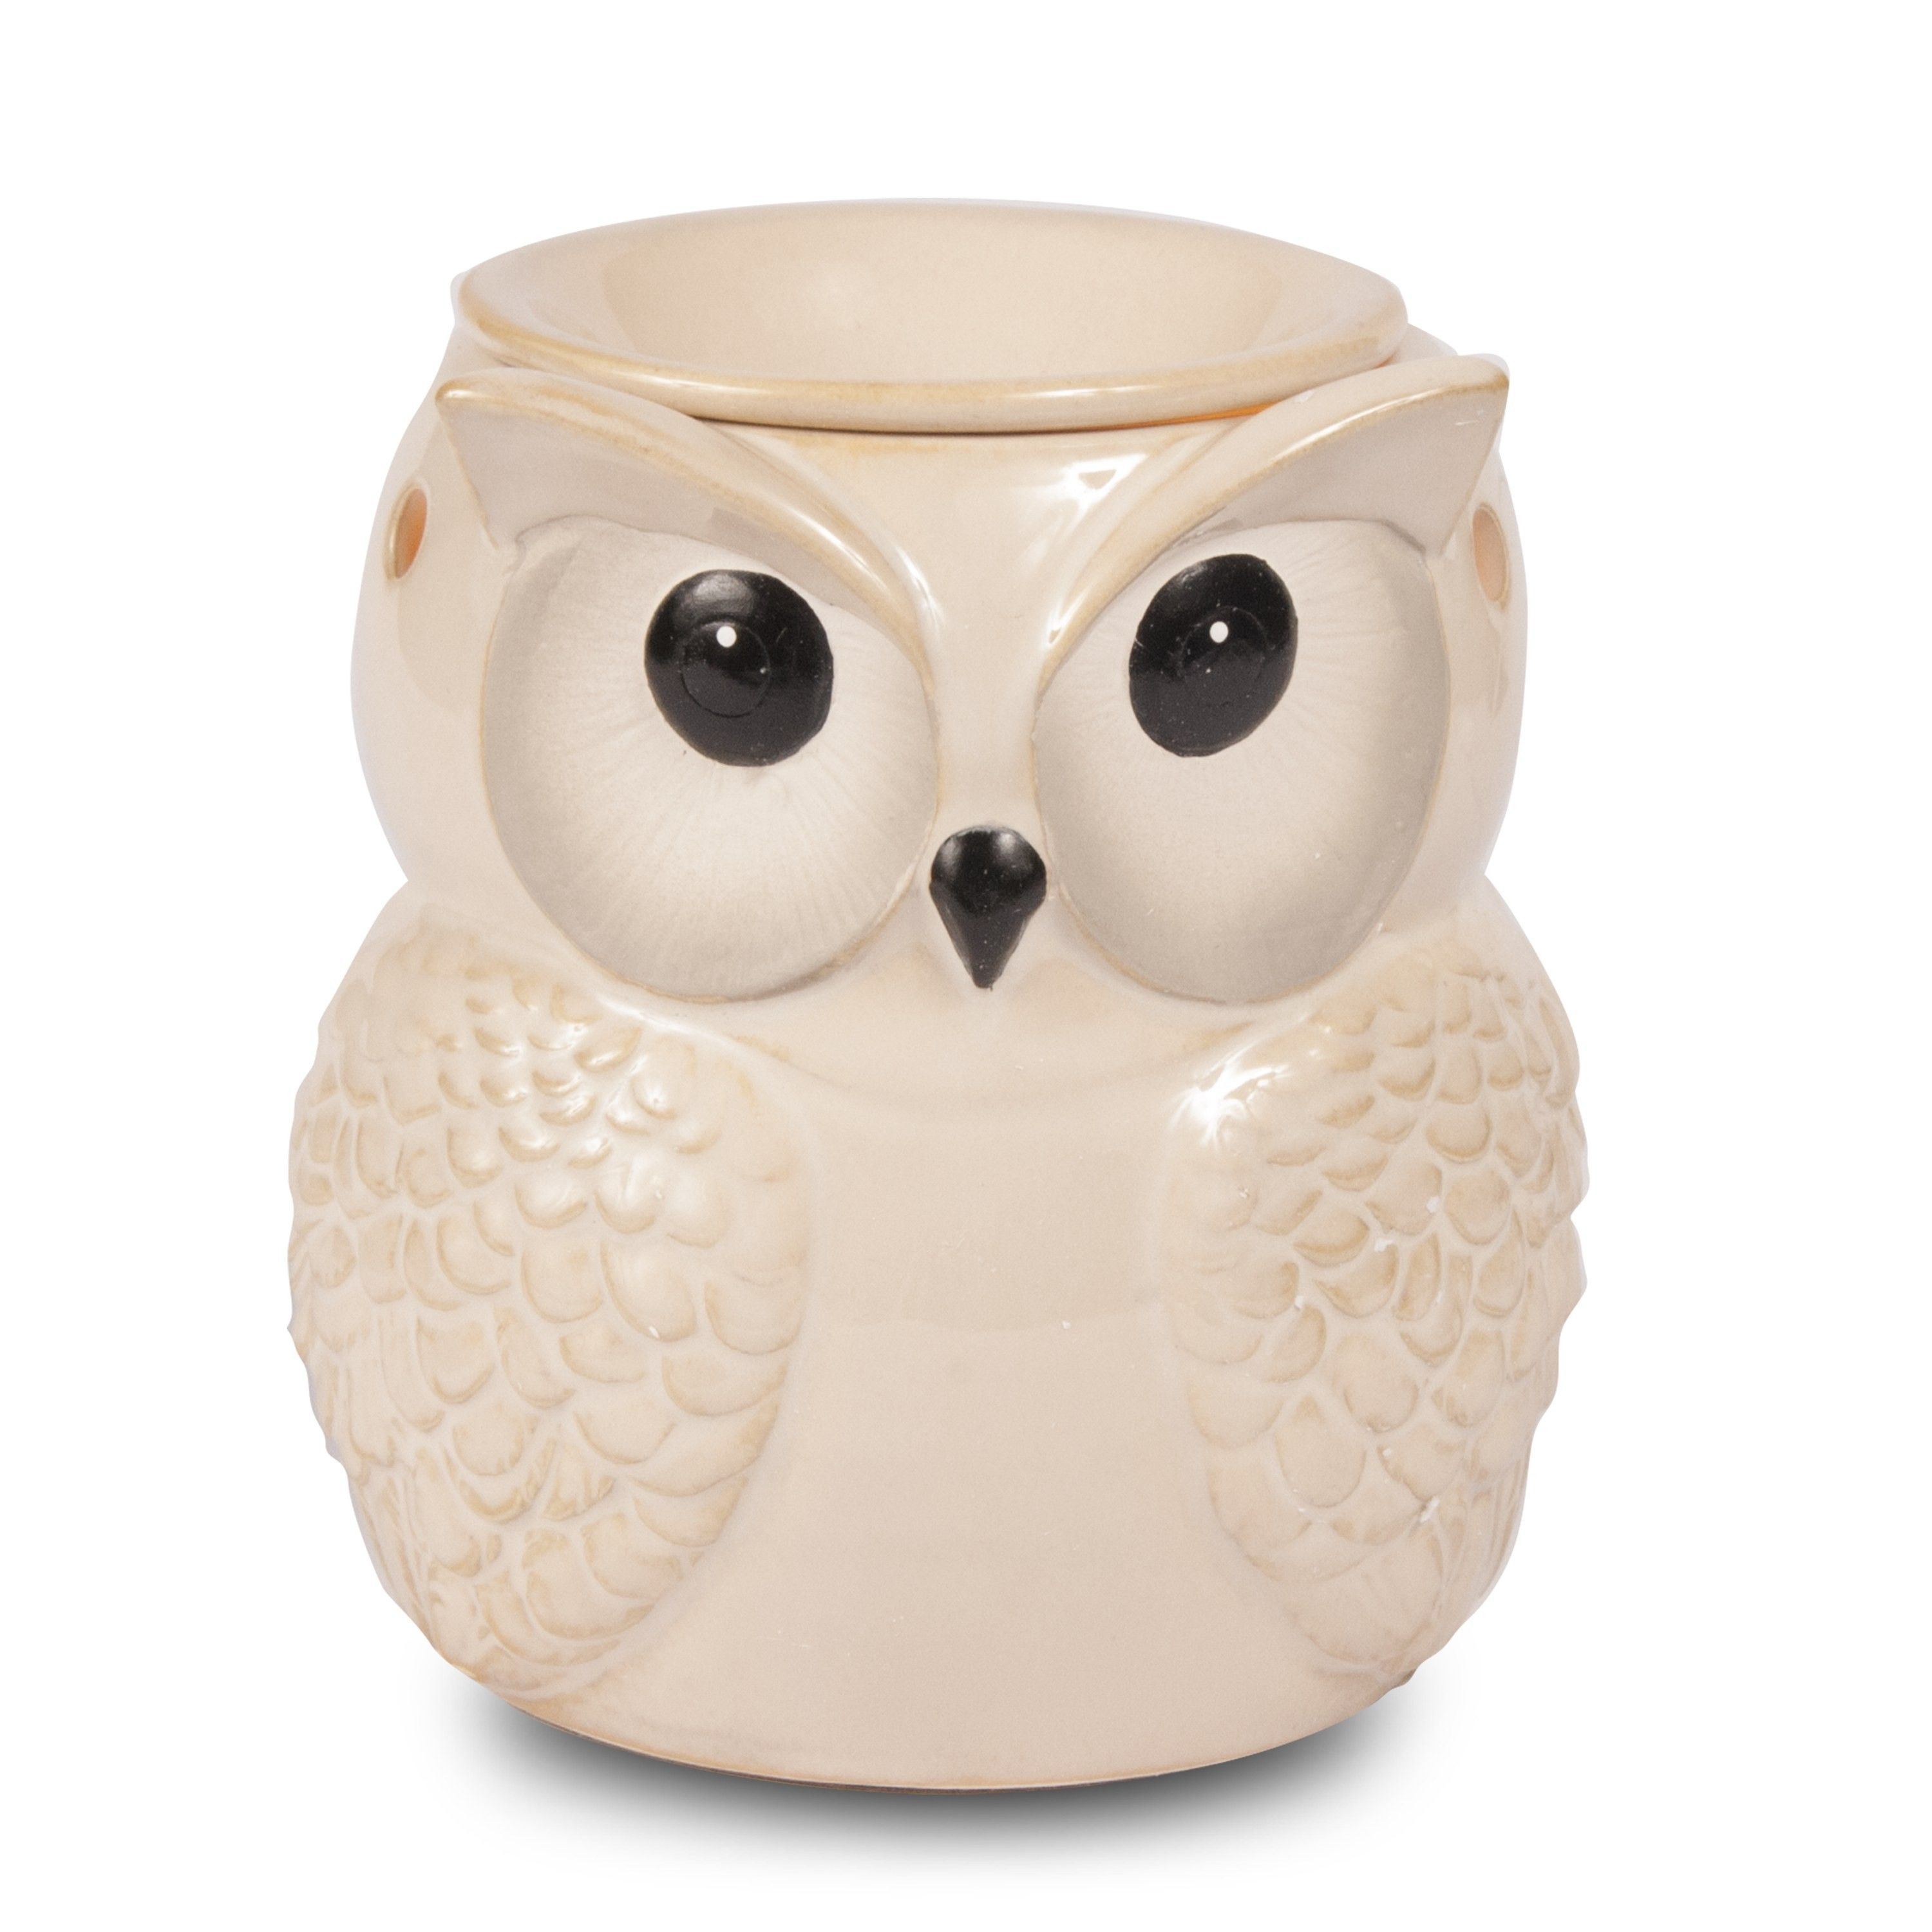 White Owl Vase Of Winter White Owl Product Photography Pinterest Owl and Product with Winter White Owl